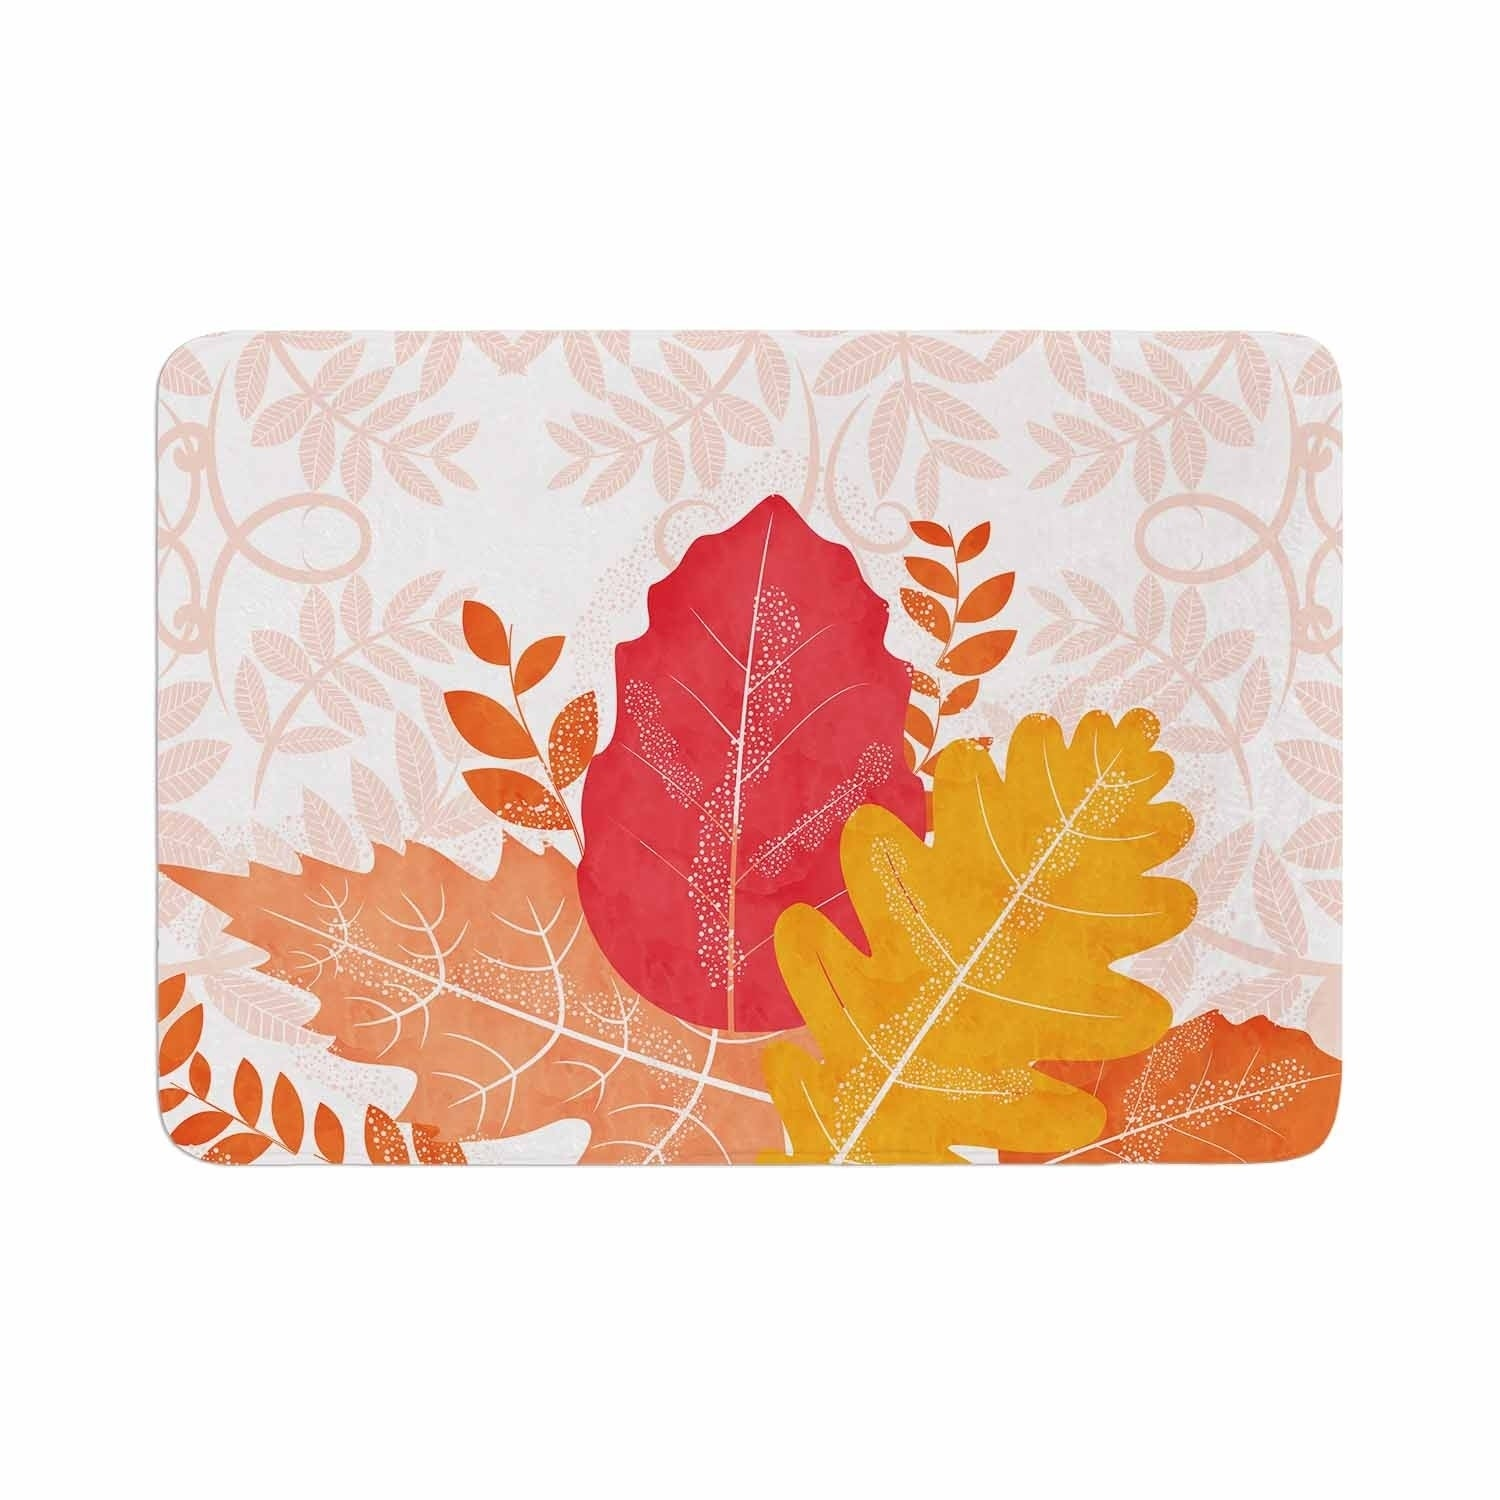 Famenxt Autumn Vibes Memory Foam Bath Mat Orange Kess Inhouse